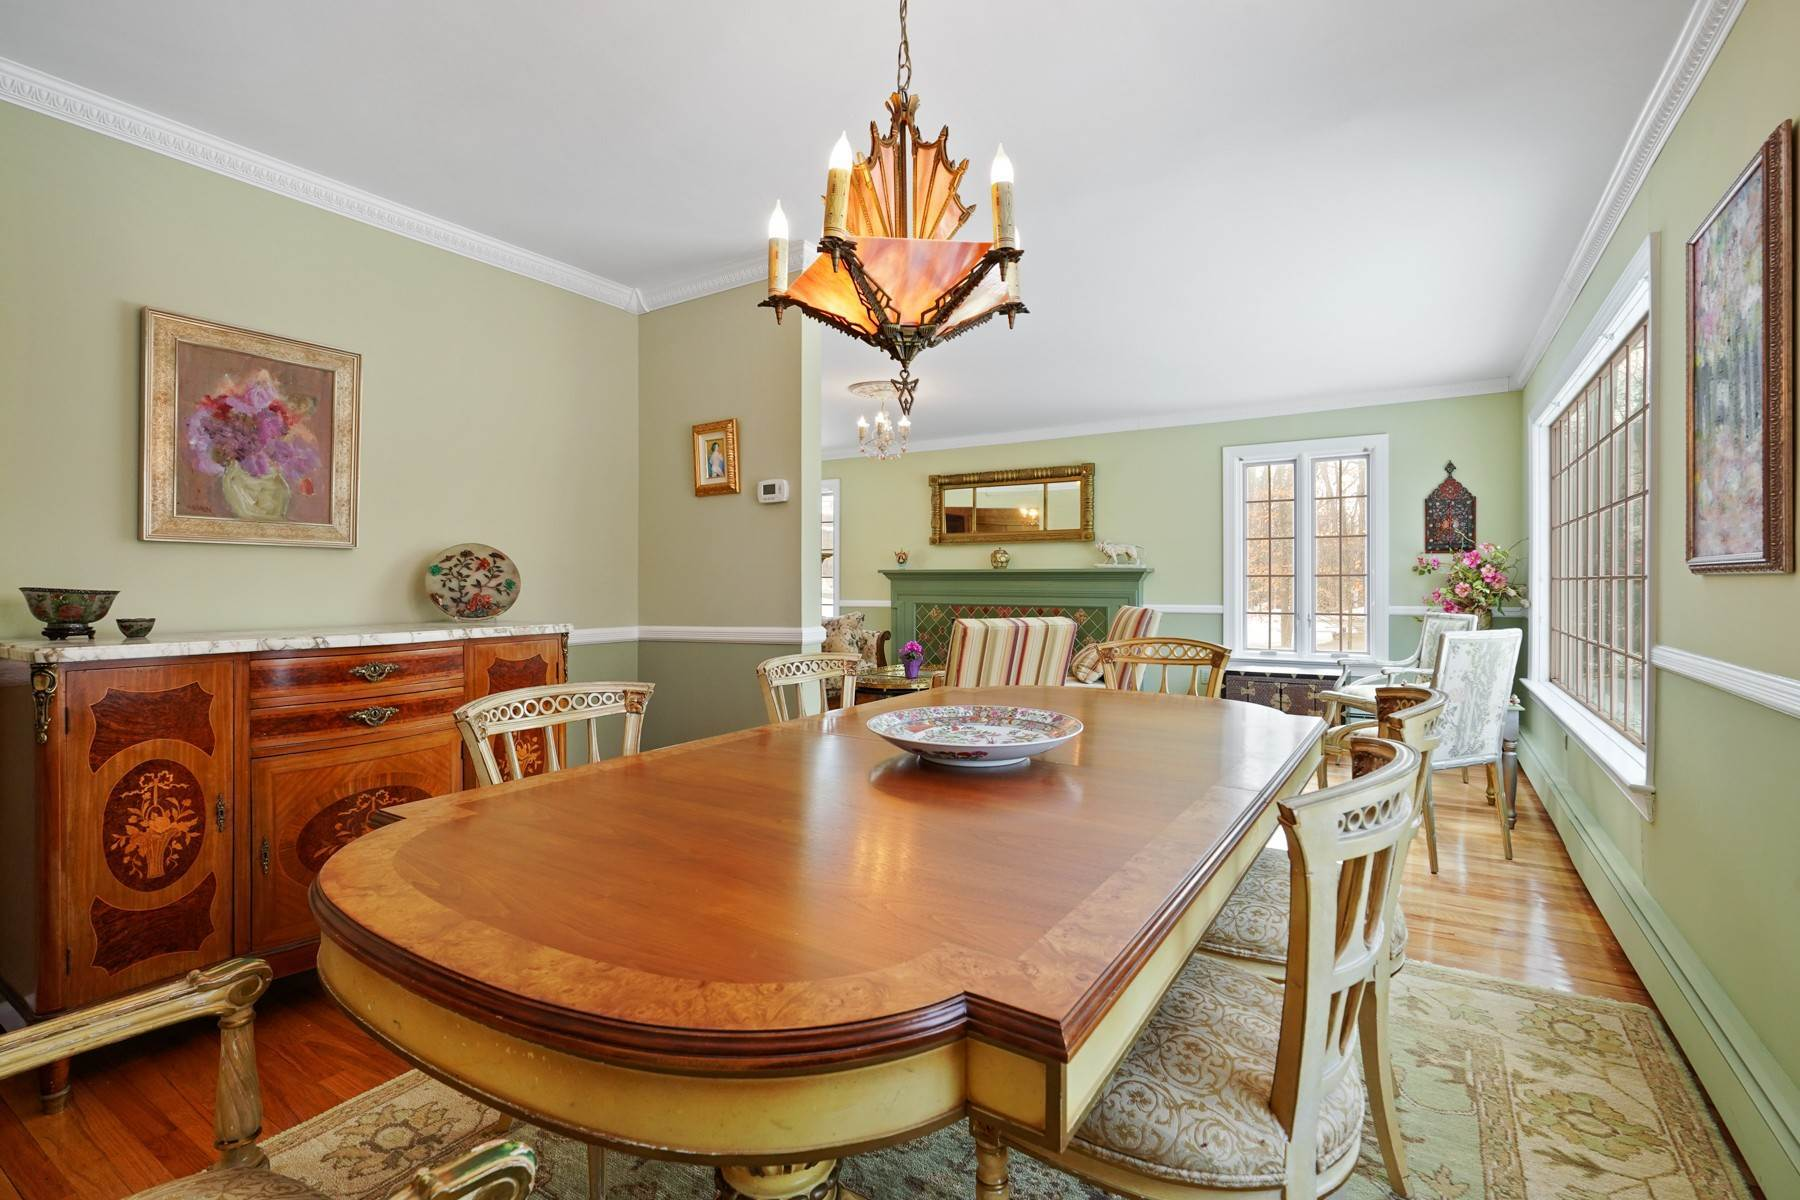 Single Family Homes for Sale at 51 Cherry Tree Lane, Kinnelon 51 Cherry Tree Lane Kinnelon, New Jersey 07405 United States